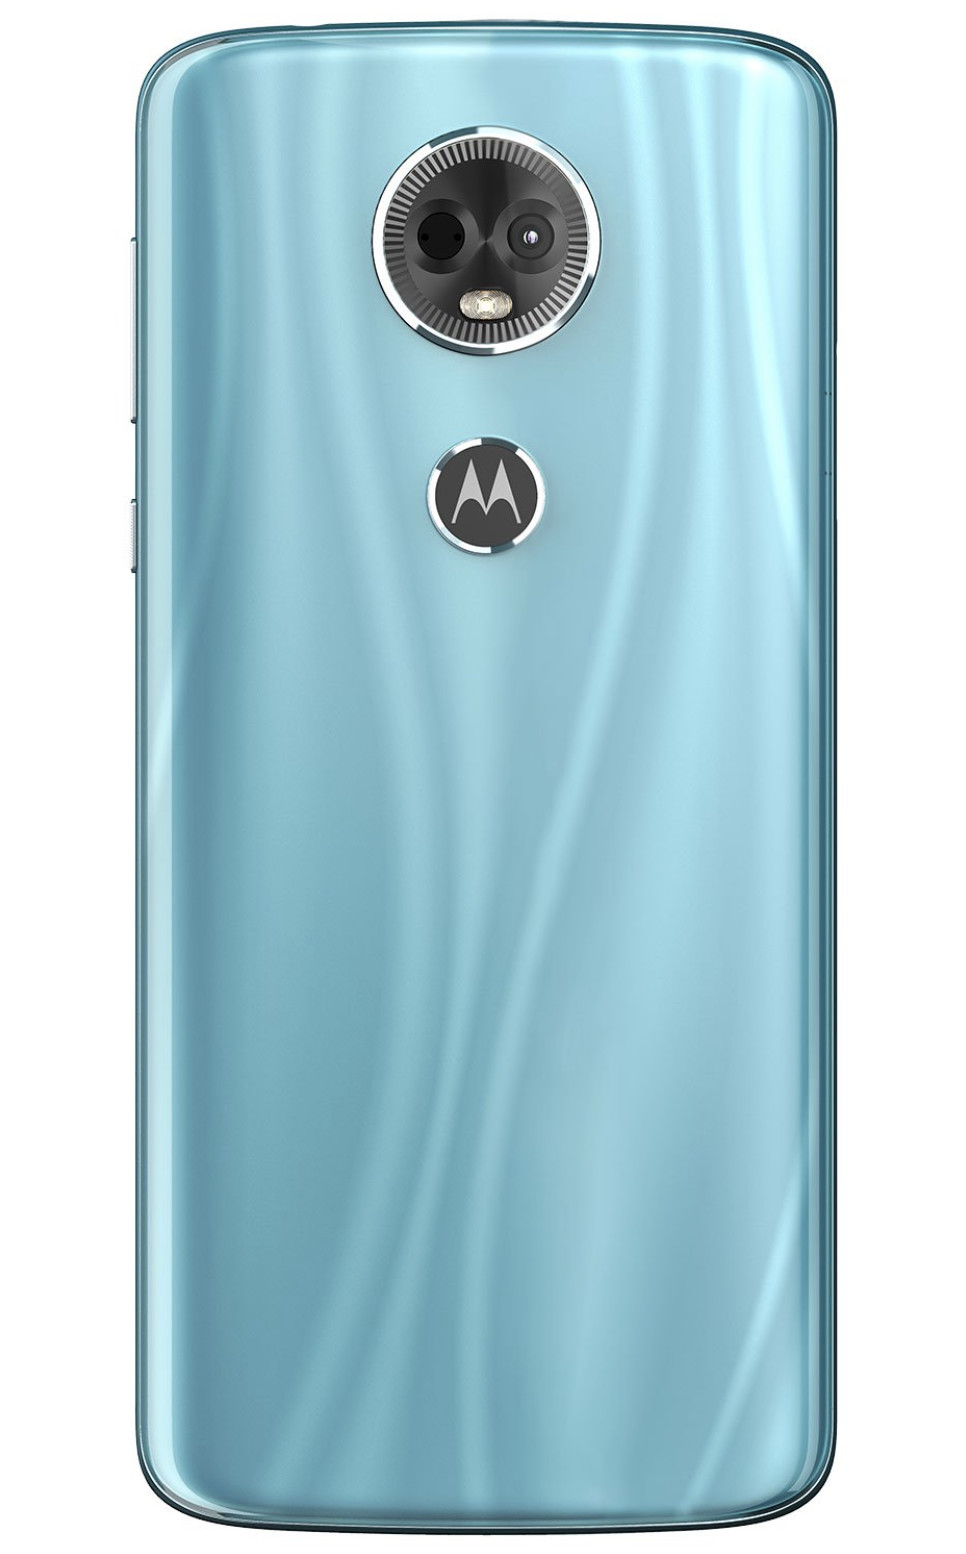 T Mobile Now Offers The Moto E5 Plus And Play Neowin Samsung Galaxy 16gb White Back In April Motorola Announced An Array Of New Handsets Including Two Are Finding There Way On